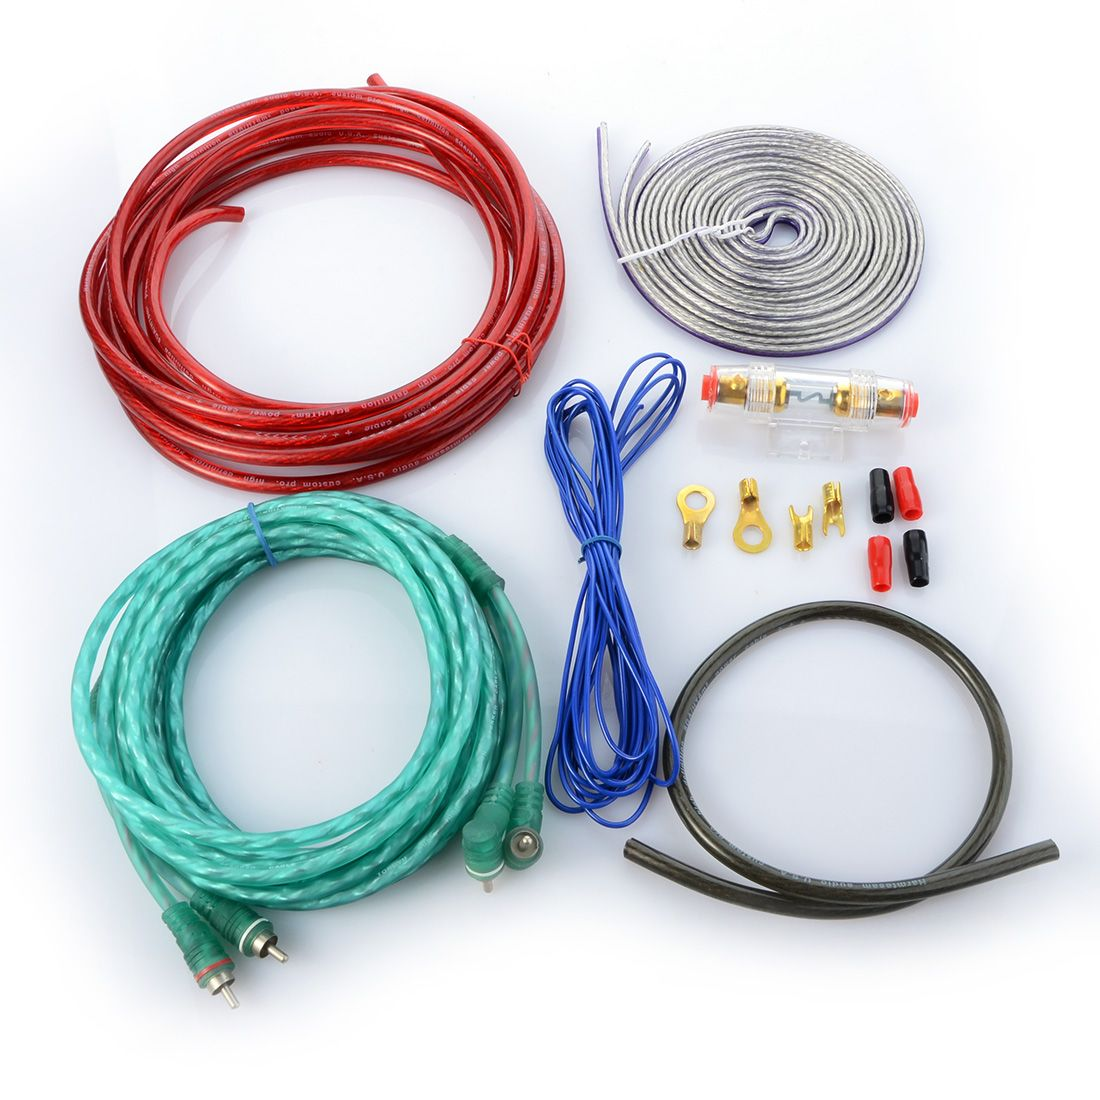 New Car Audio Wire RCA Amplifier Subwoofer Cable Speaker Wire Kit ...